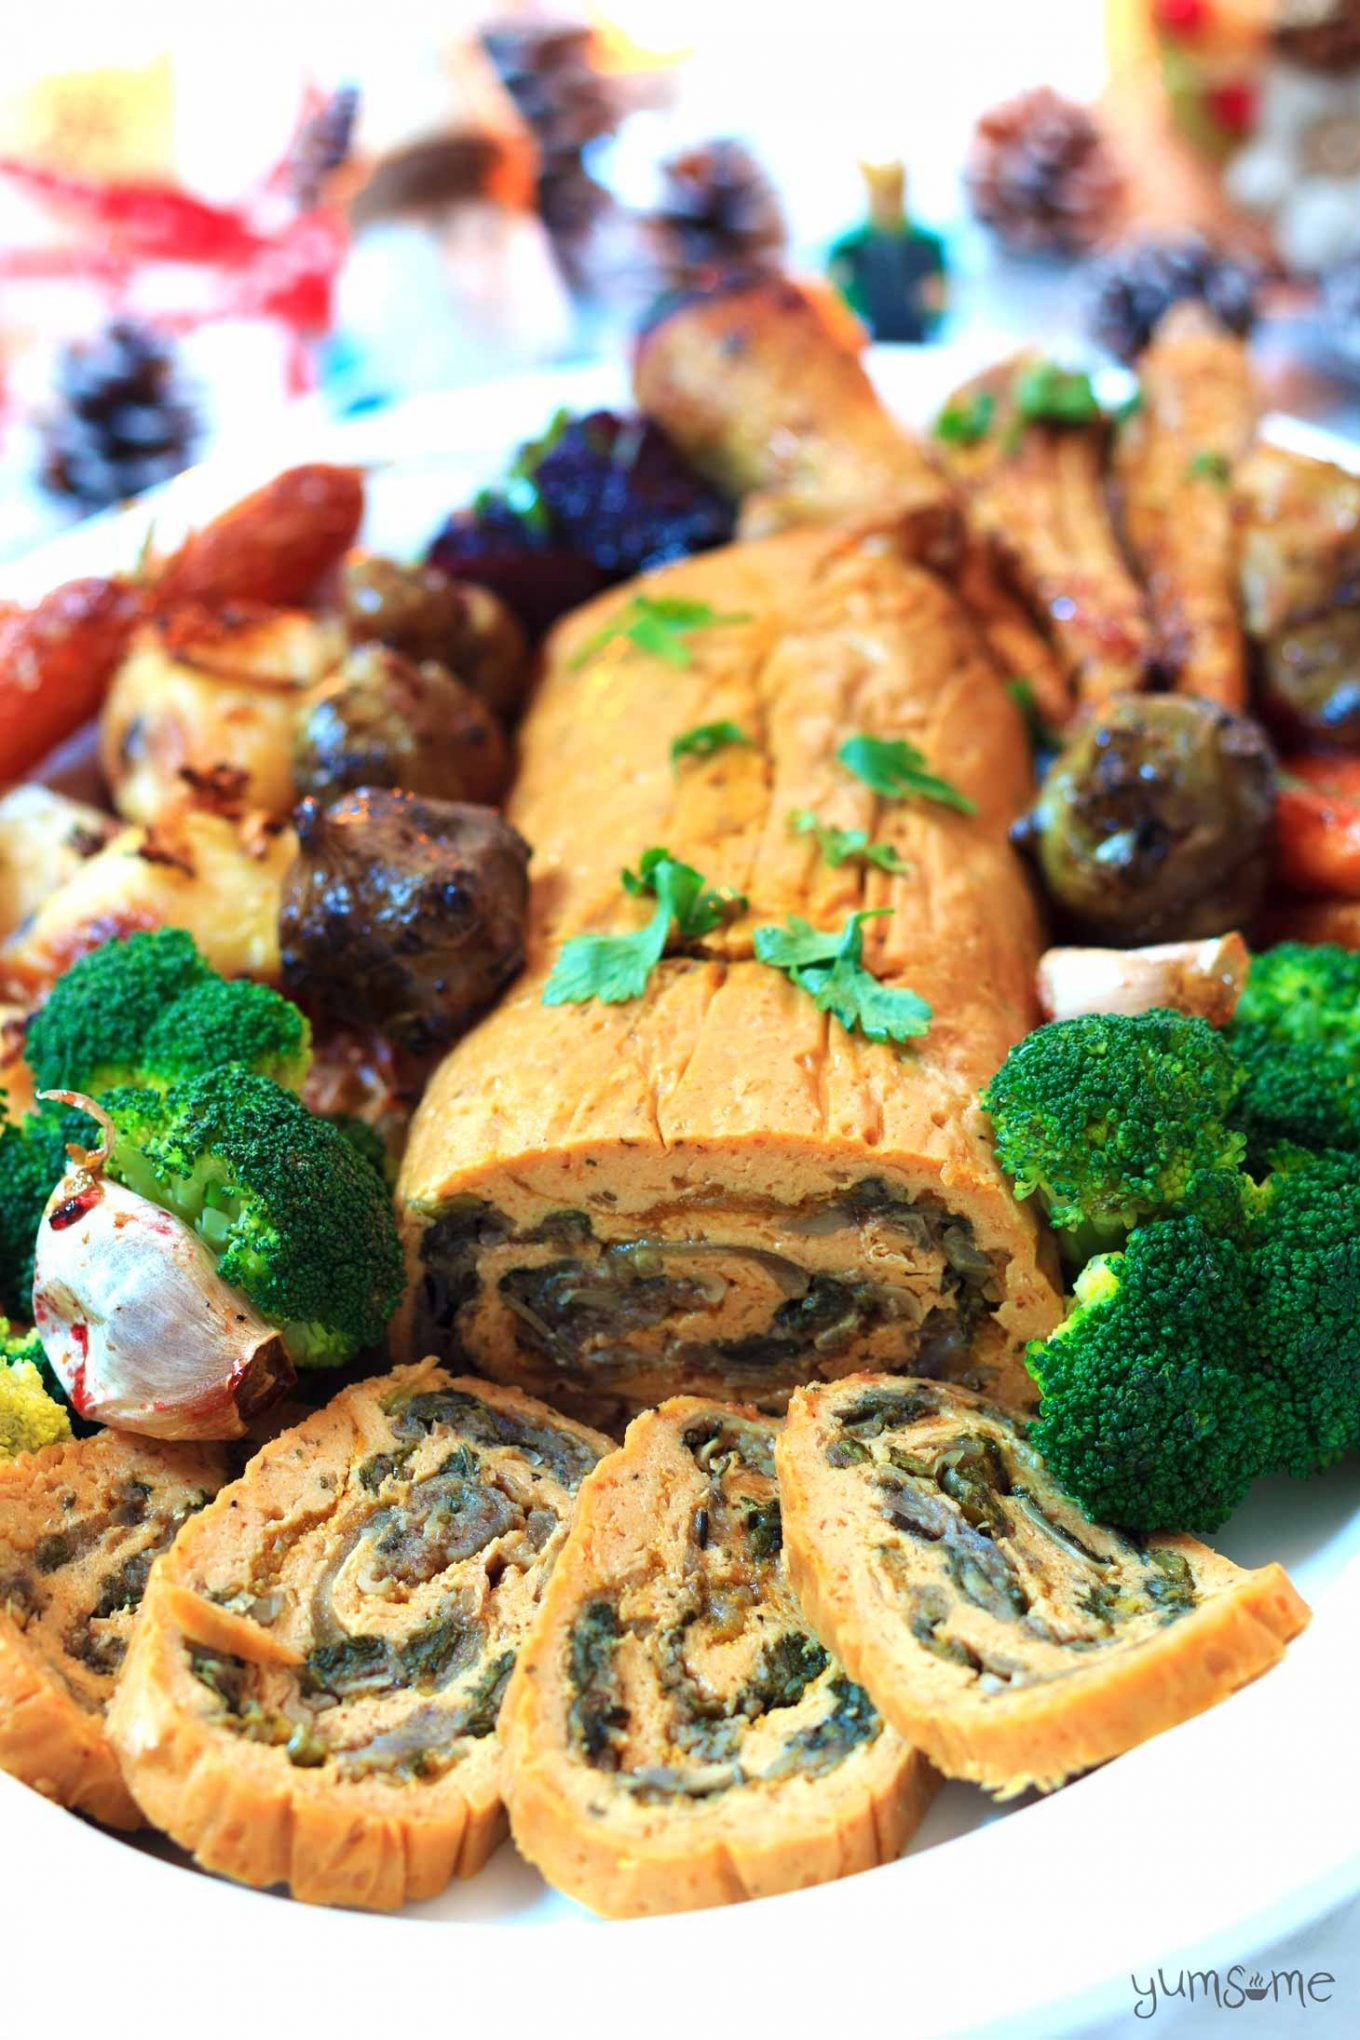 Roast seitan roulade with vegetables on a white platter.